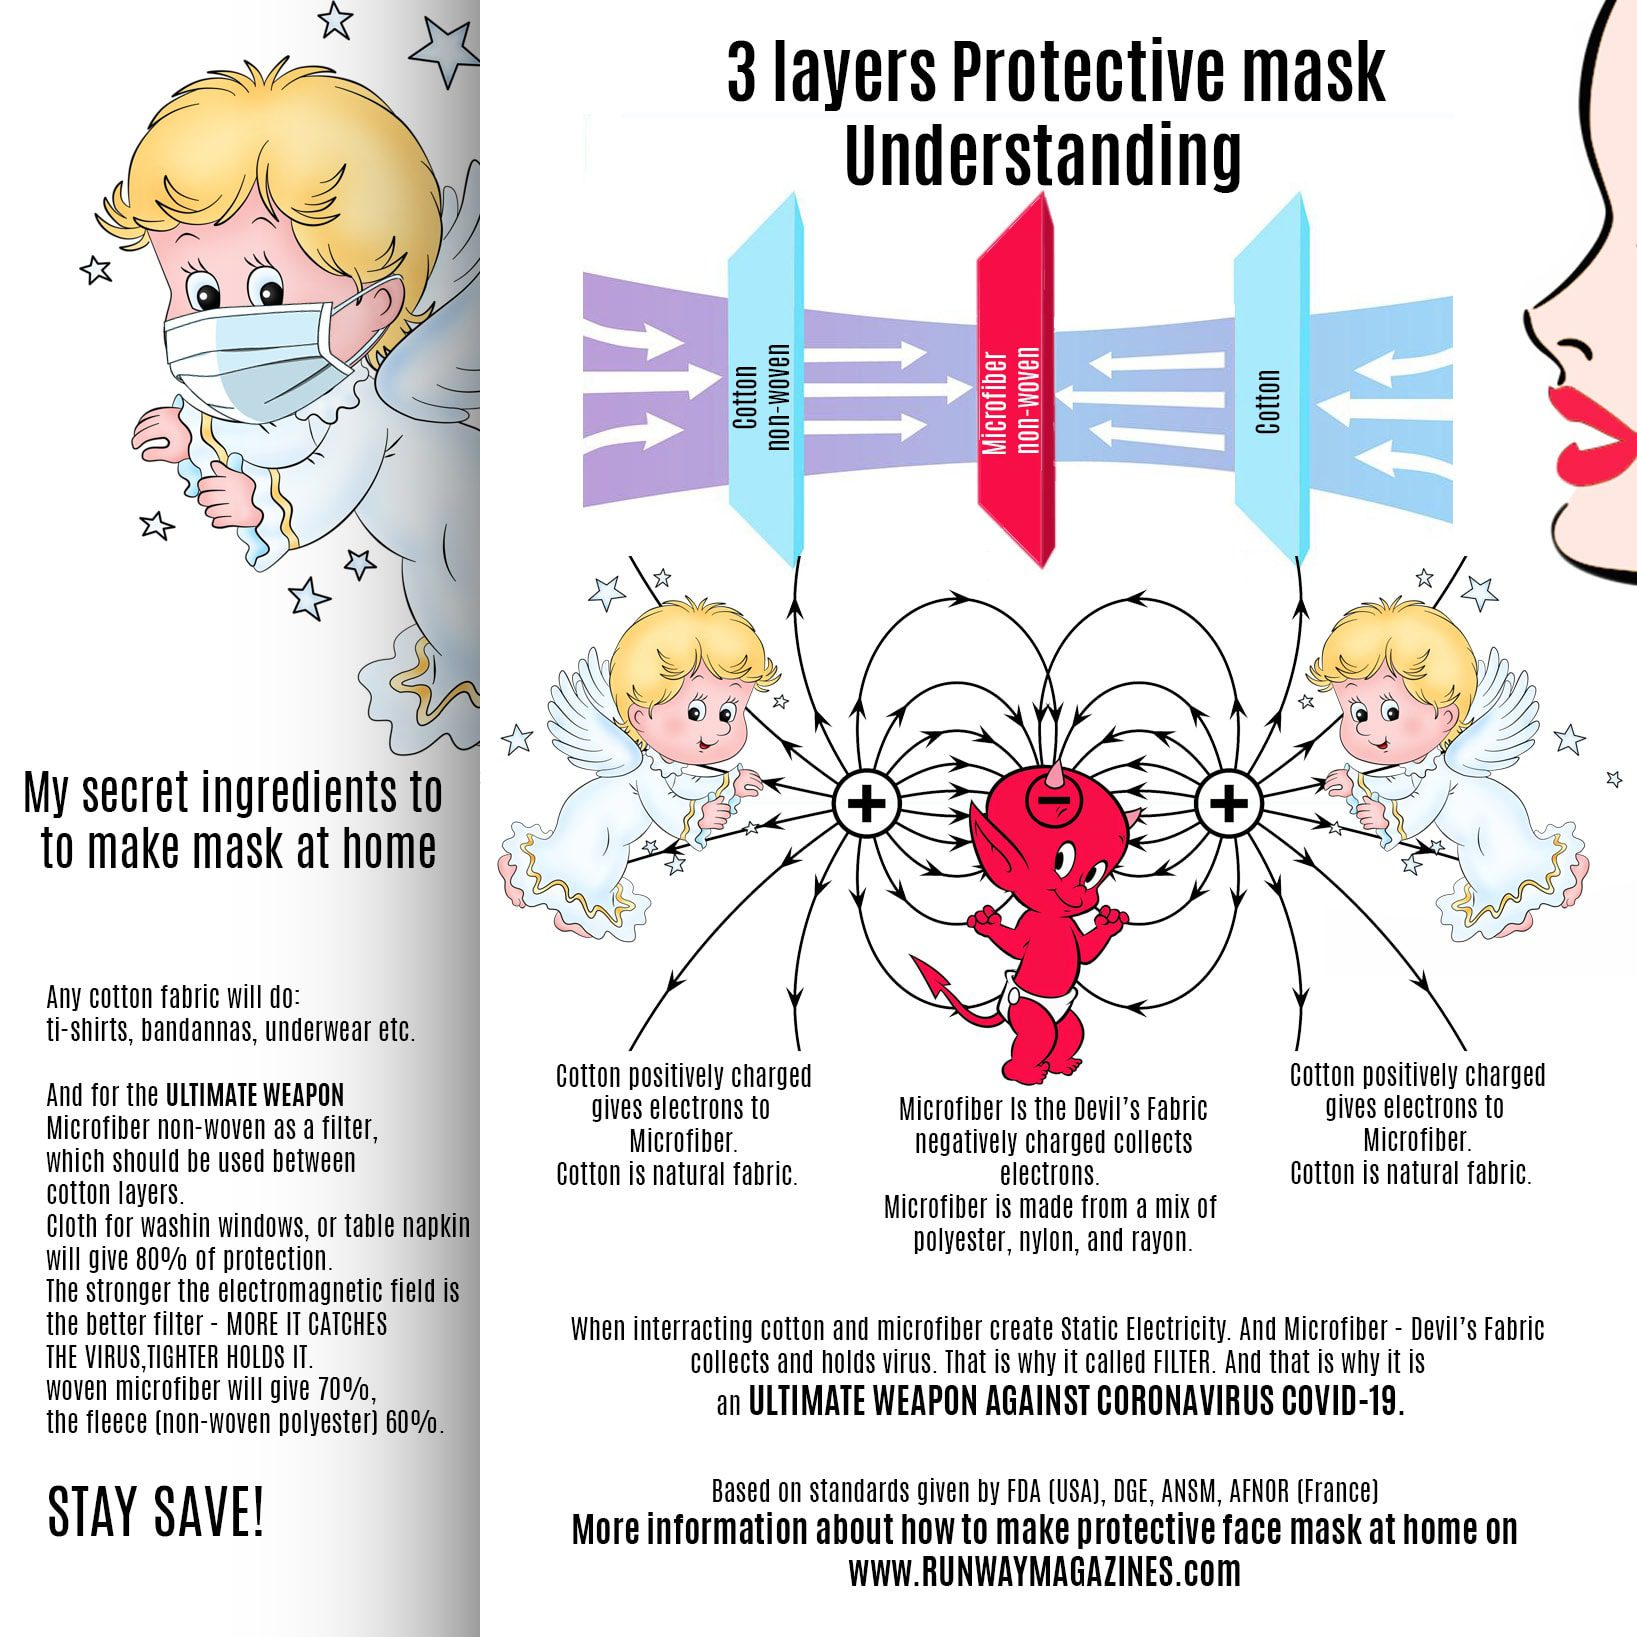 Understanding of 3 layers protective mask